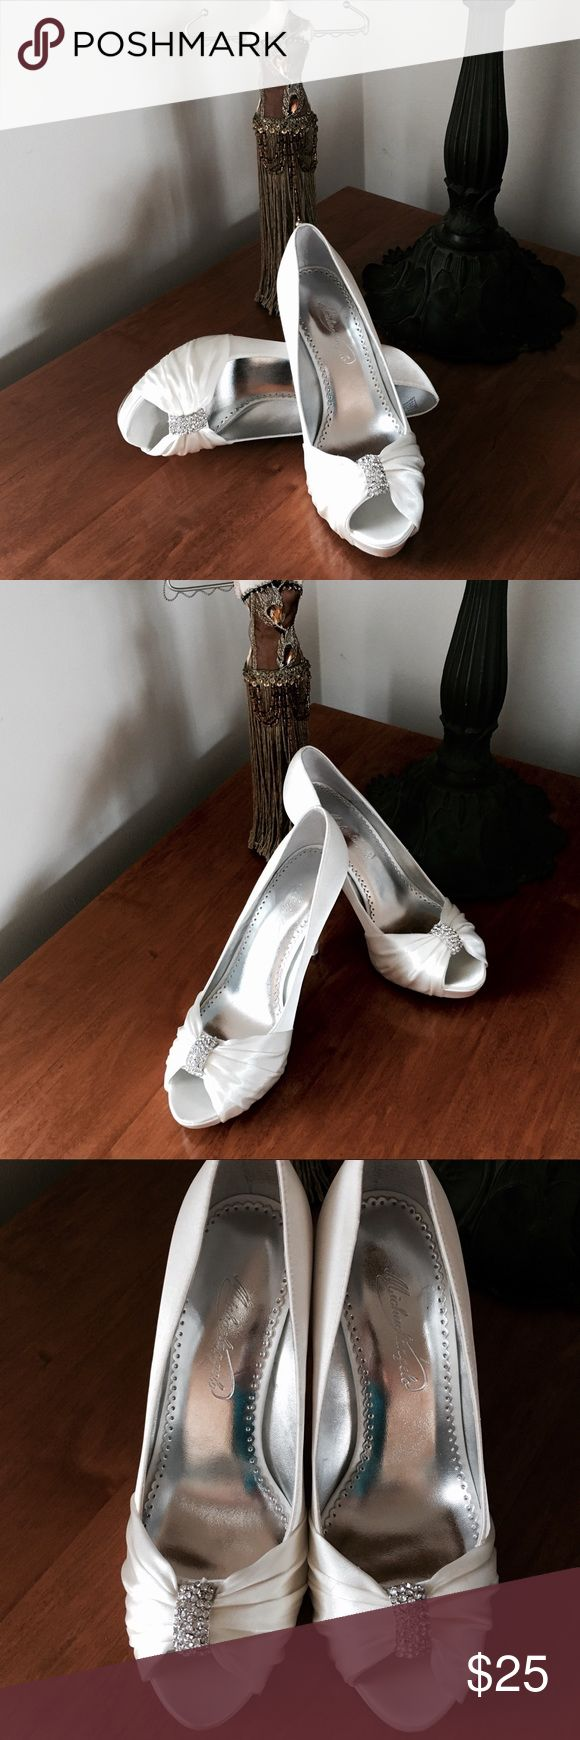 Shop Womens Michael Angelo Size Heels At A Discounted Price Poshmark Description Satin Diana Off White Wedding Shoes 7 M